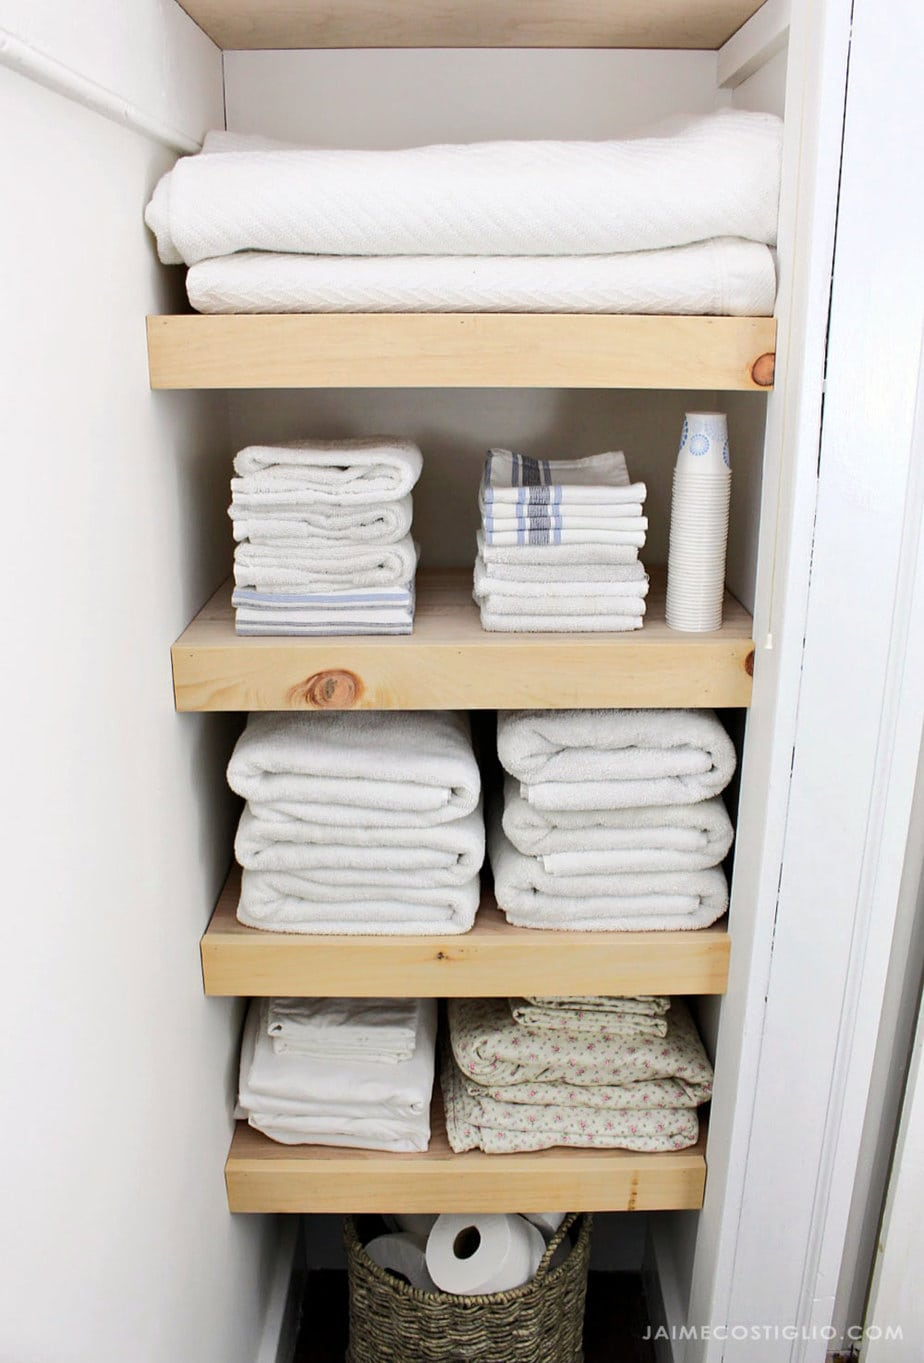 plywood shelves with linens